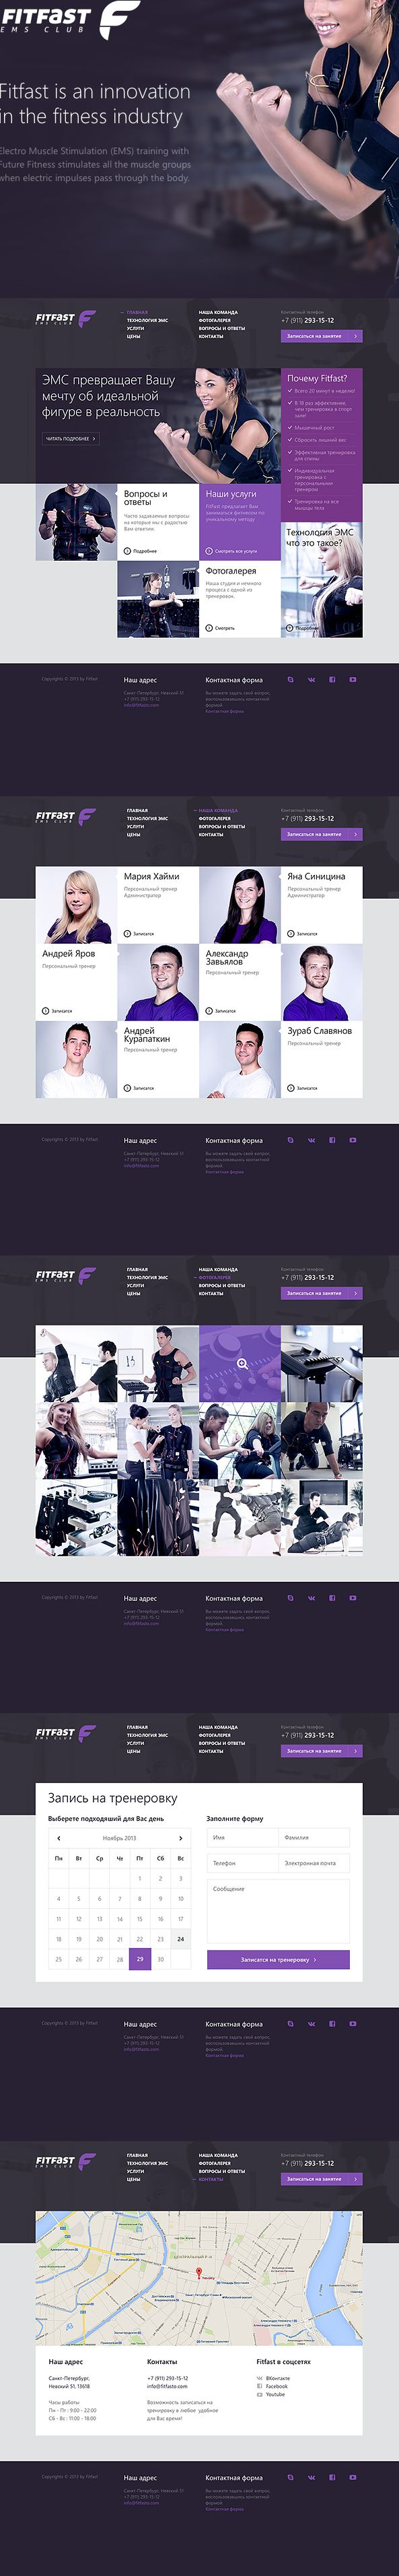 Fitfast fitness studio by Pavel Ivanov, via Behance